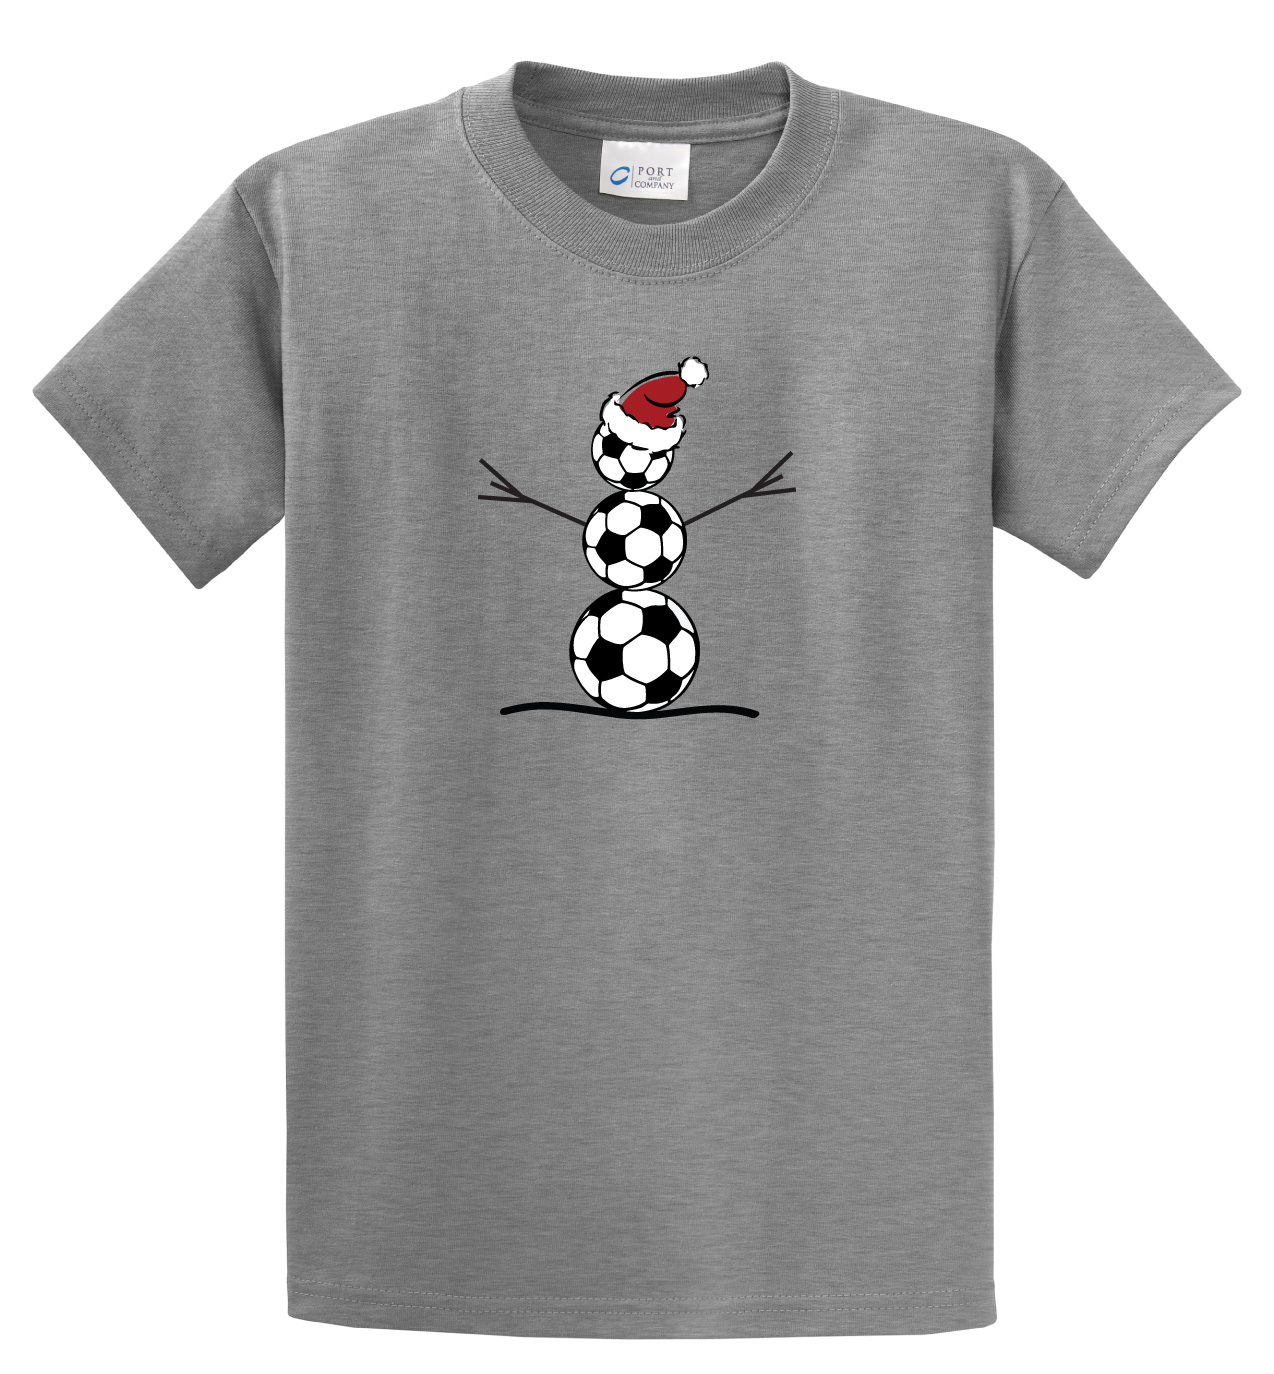 Soccer Snowman tshirt in athletic heather by Code Four Athletics